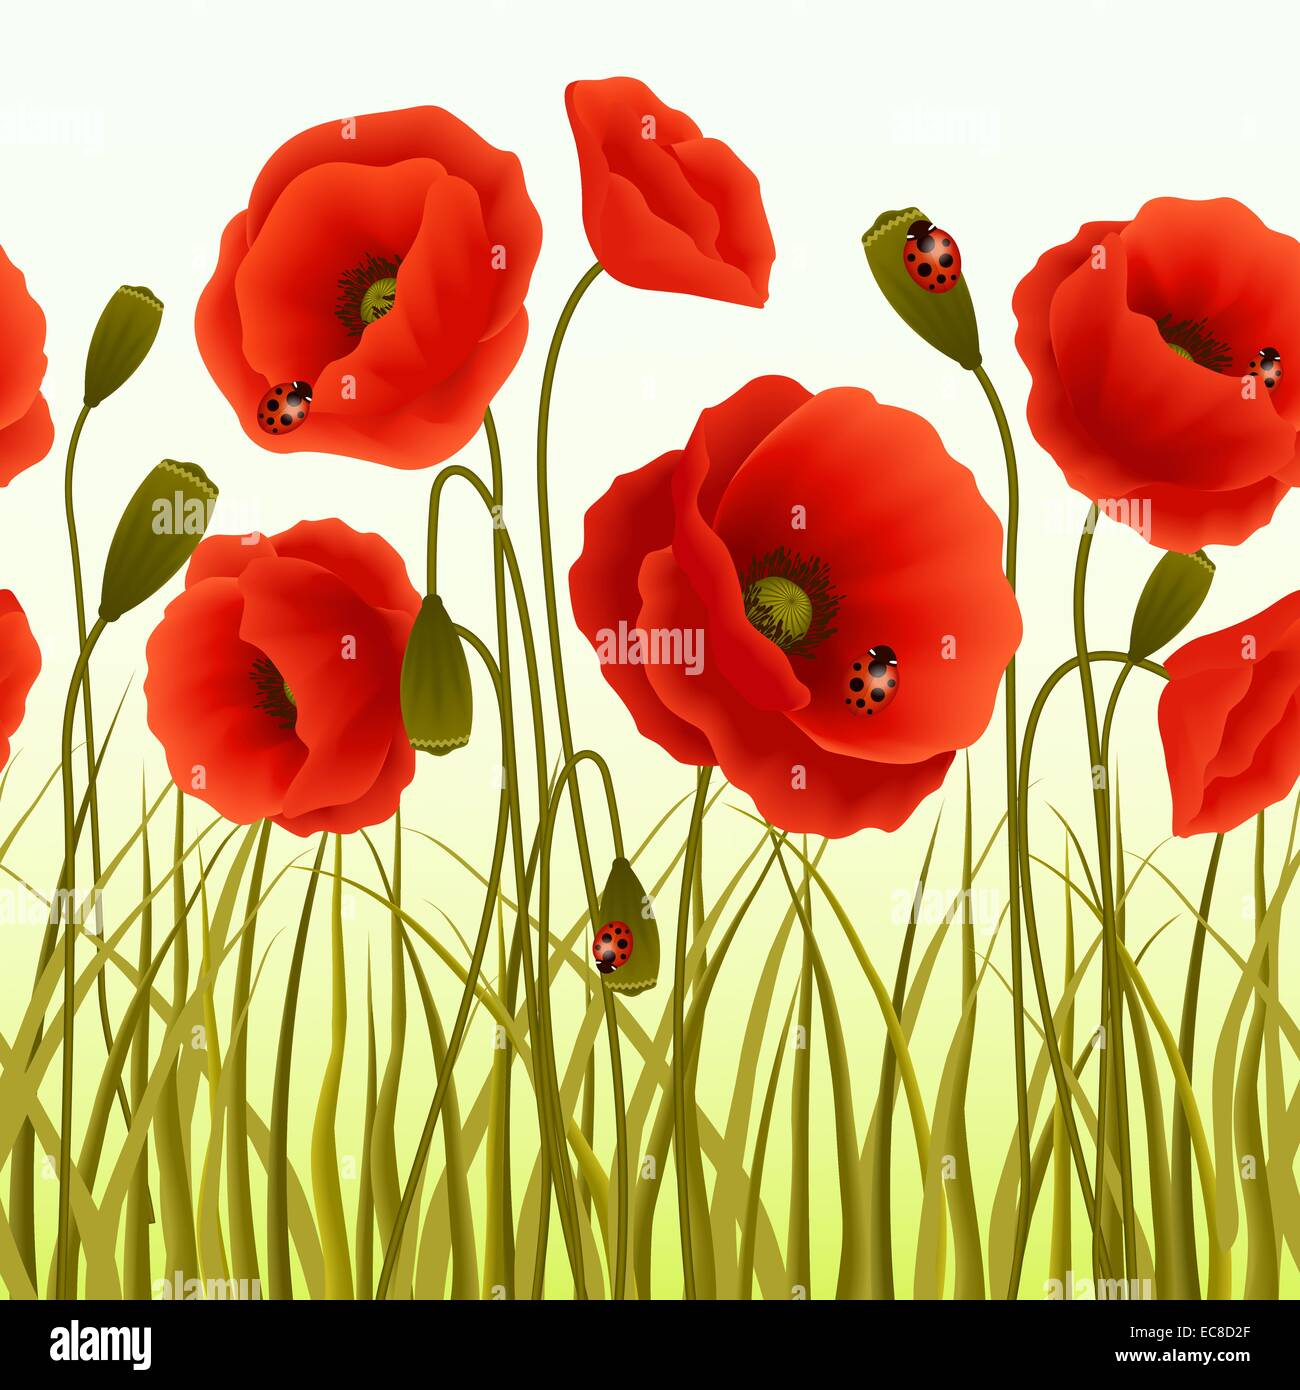 Red romantic poppy flowers and grass with ladybugs wallpaper vector red romantic poppy flowers and grass with ladybugs wallpaper vector illustration mightylinksfo